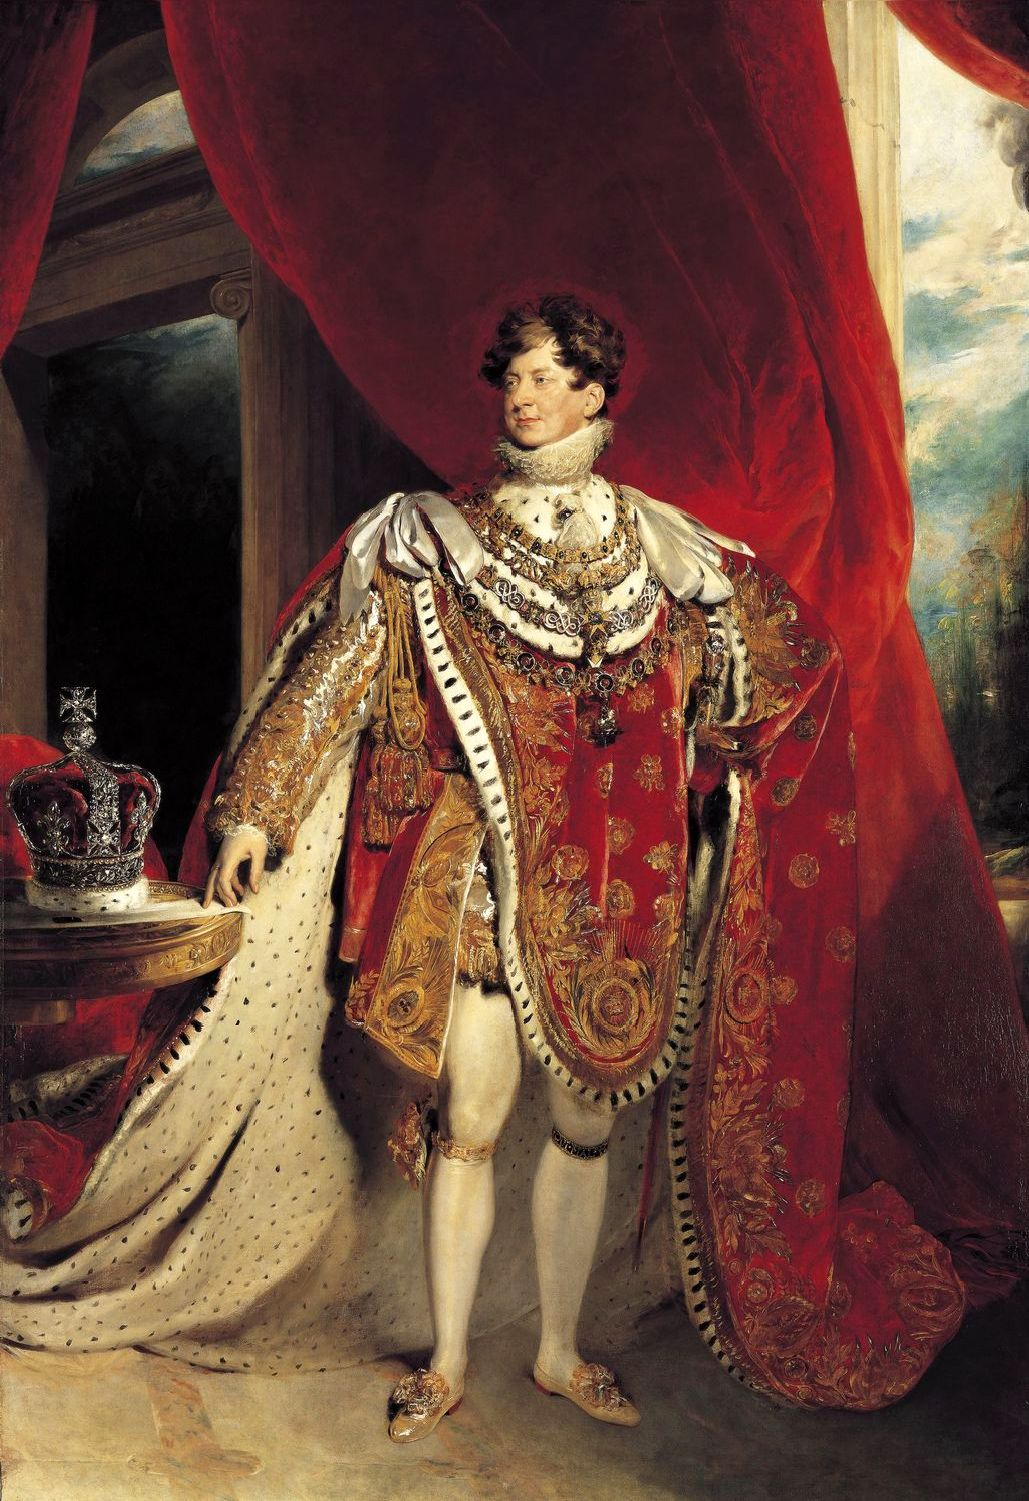 King George IV of Great Britain. Reigned 1820-1830. Coronation 19 July 1821